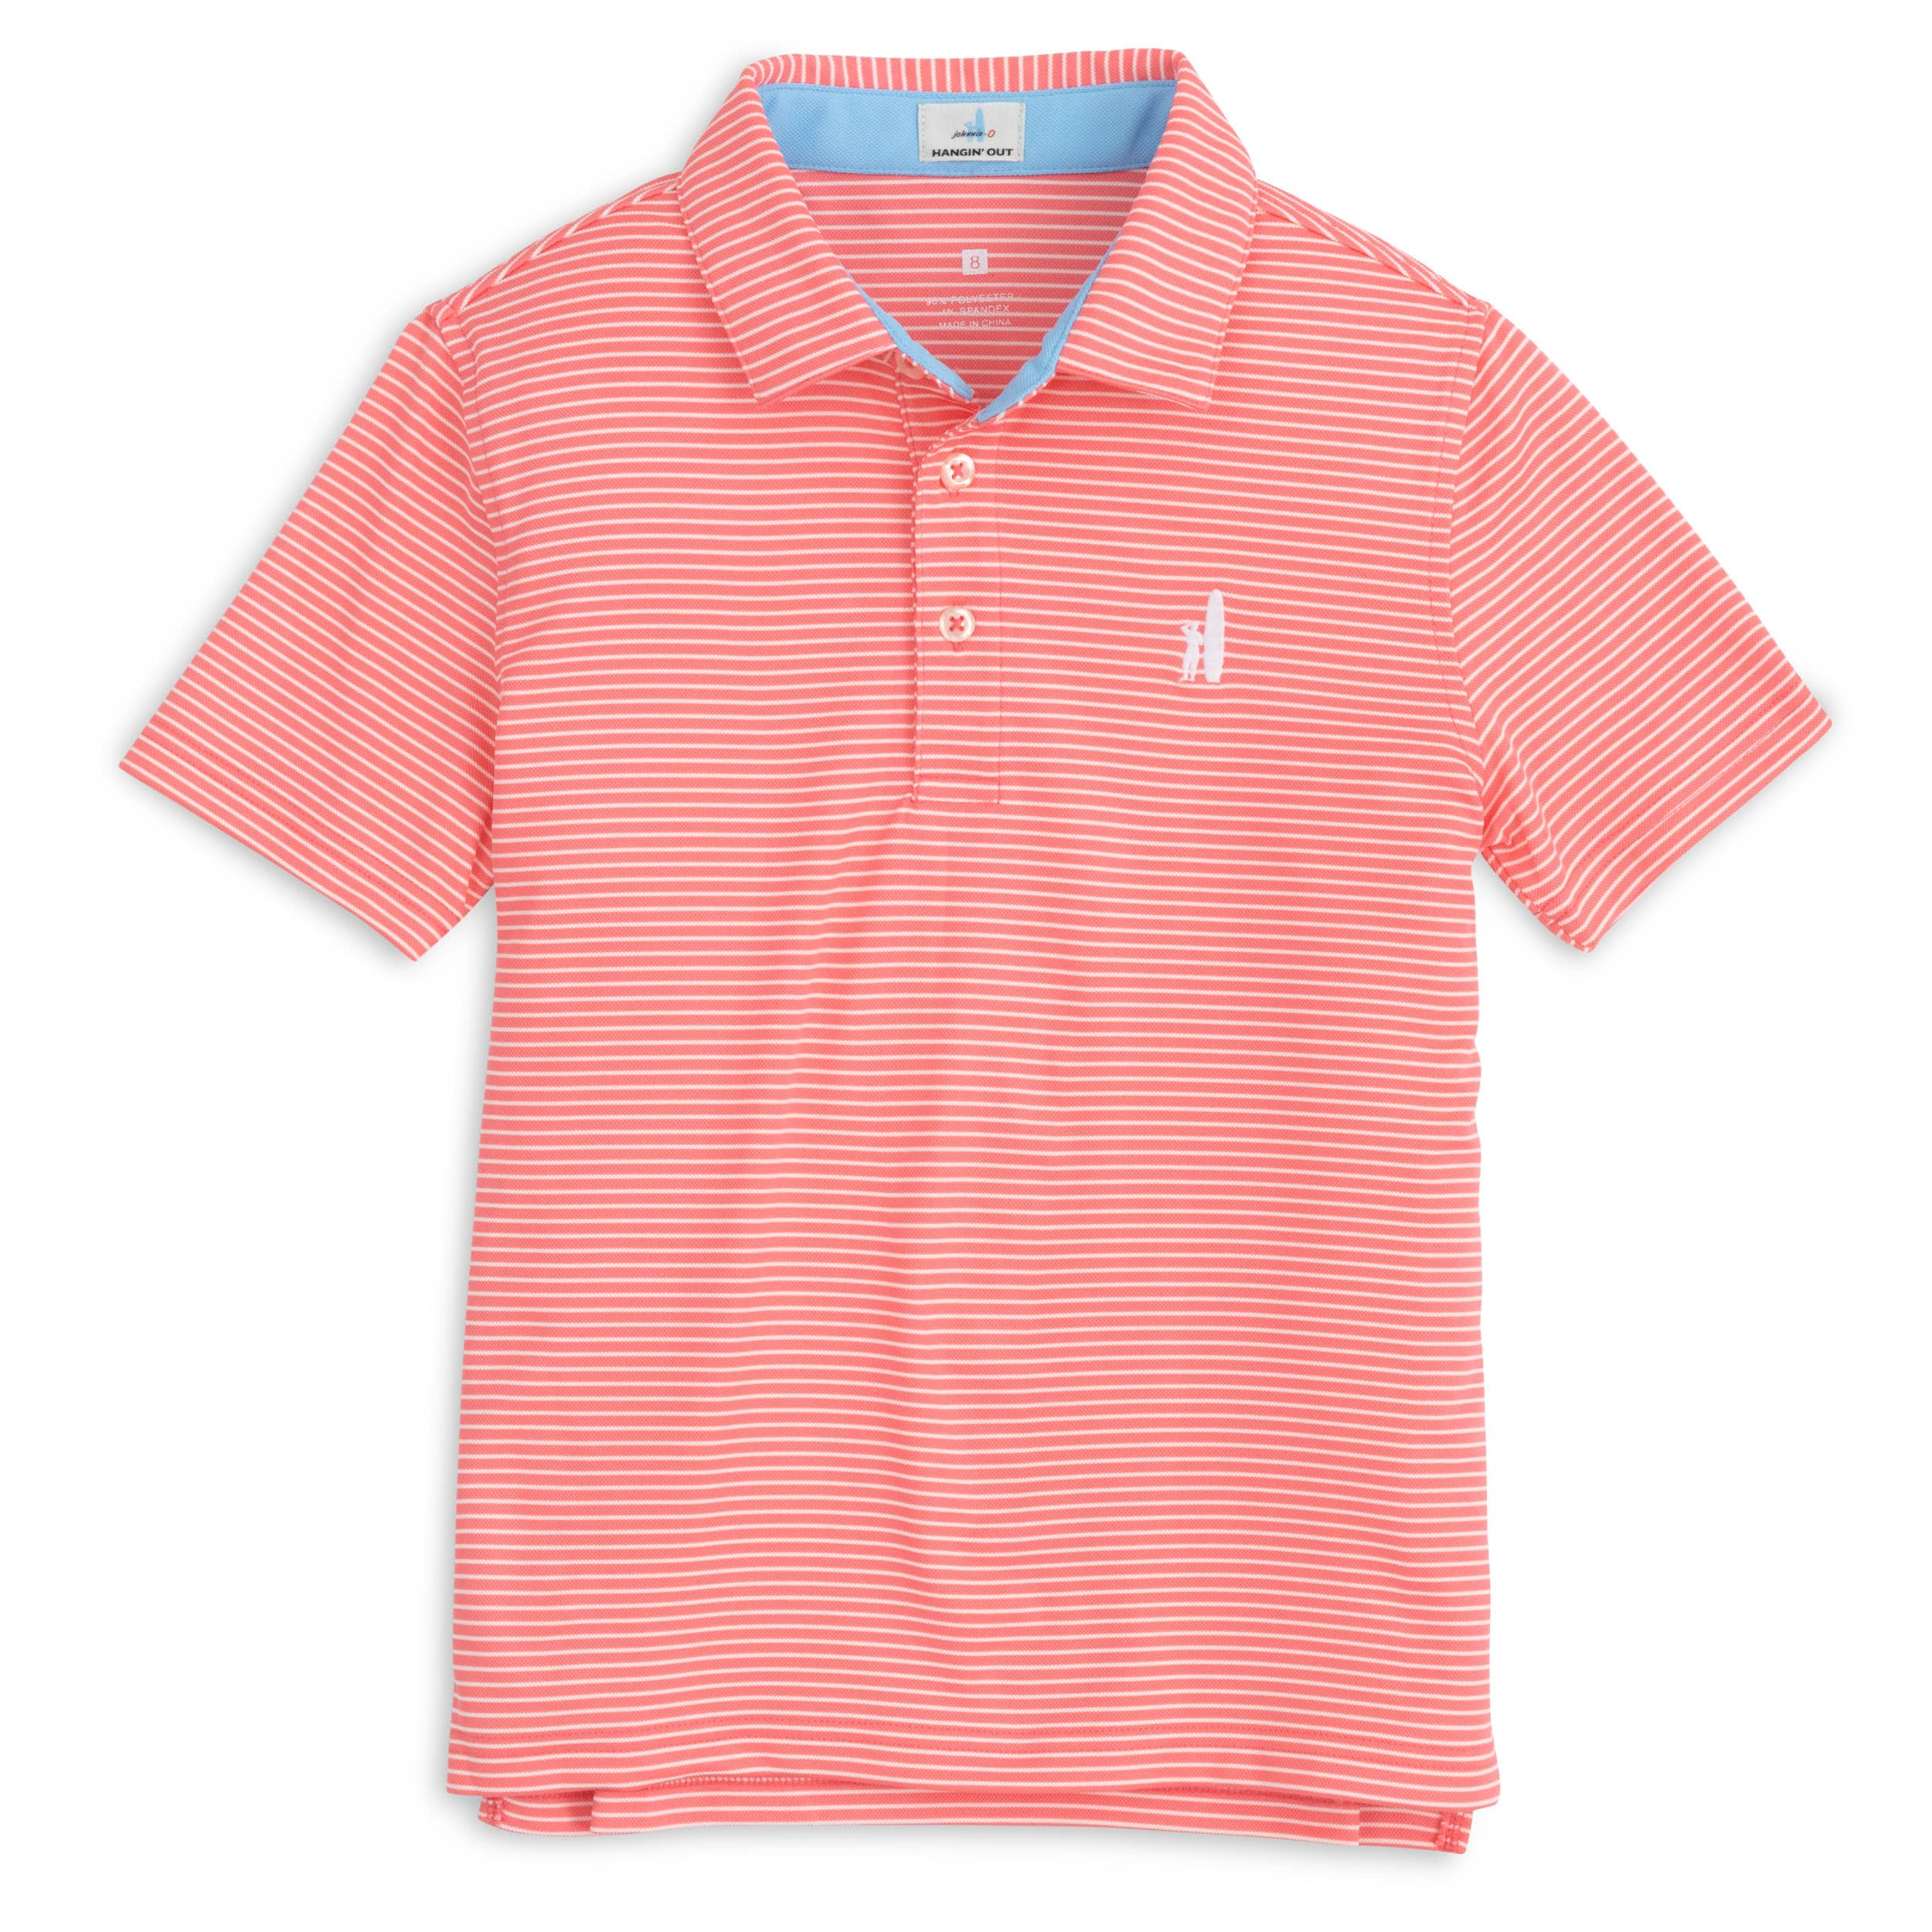 MERRINS JR STRIPED PREP POLO